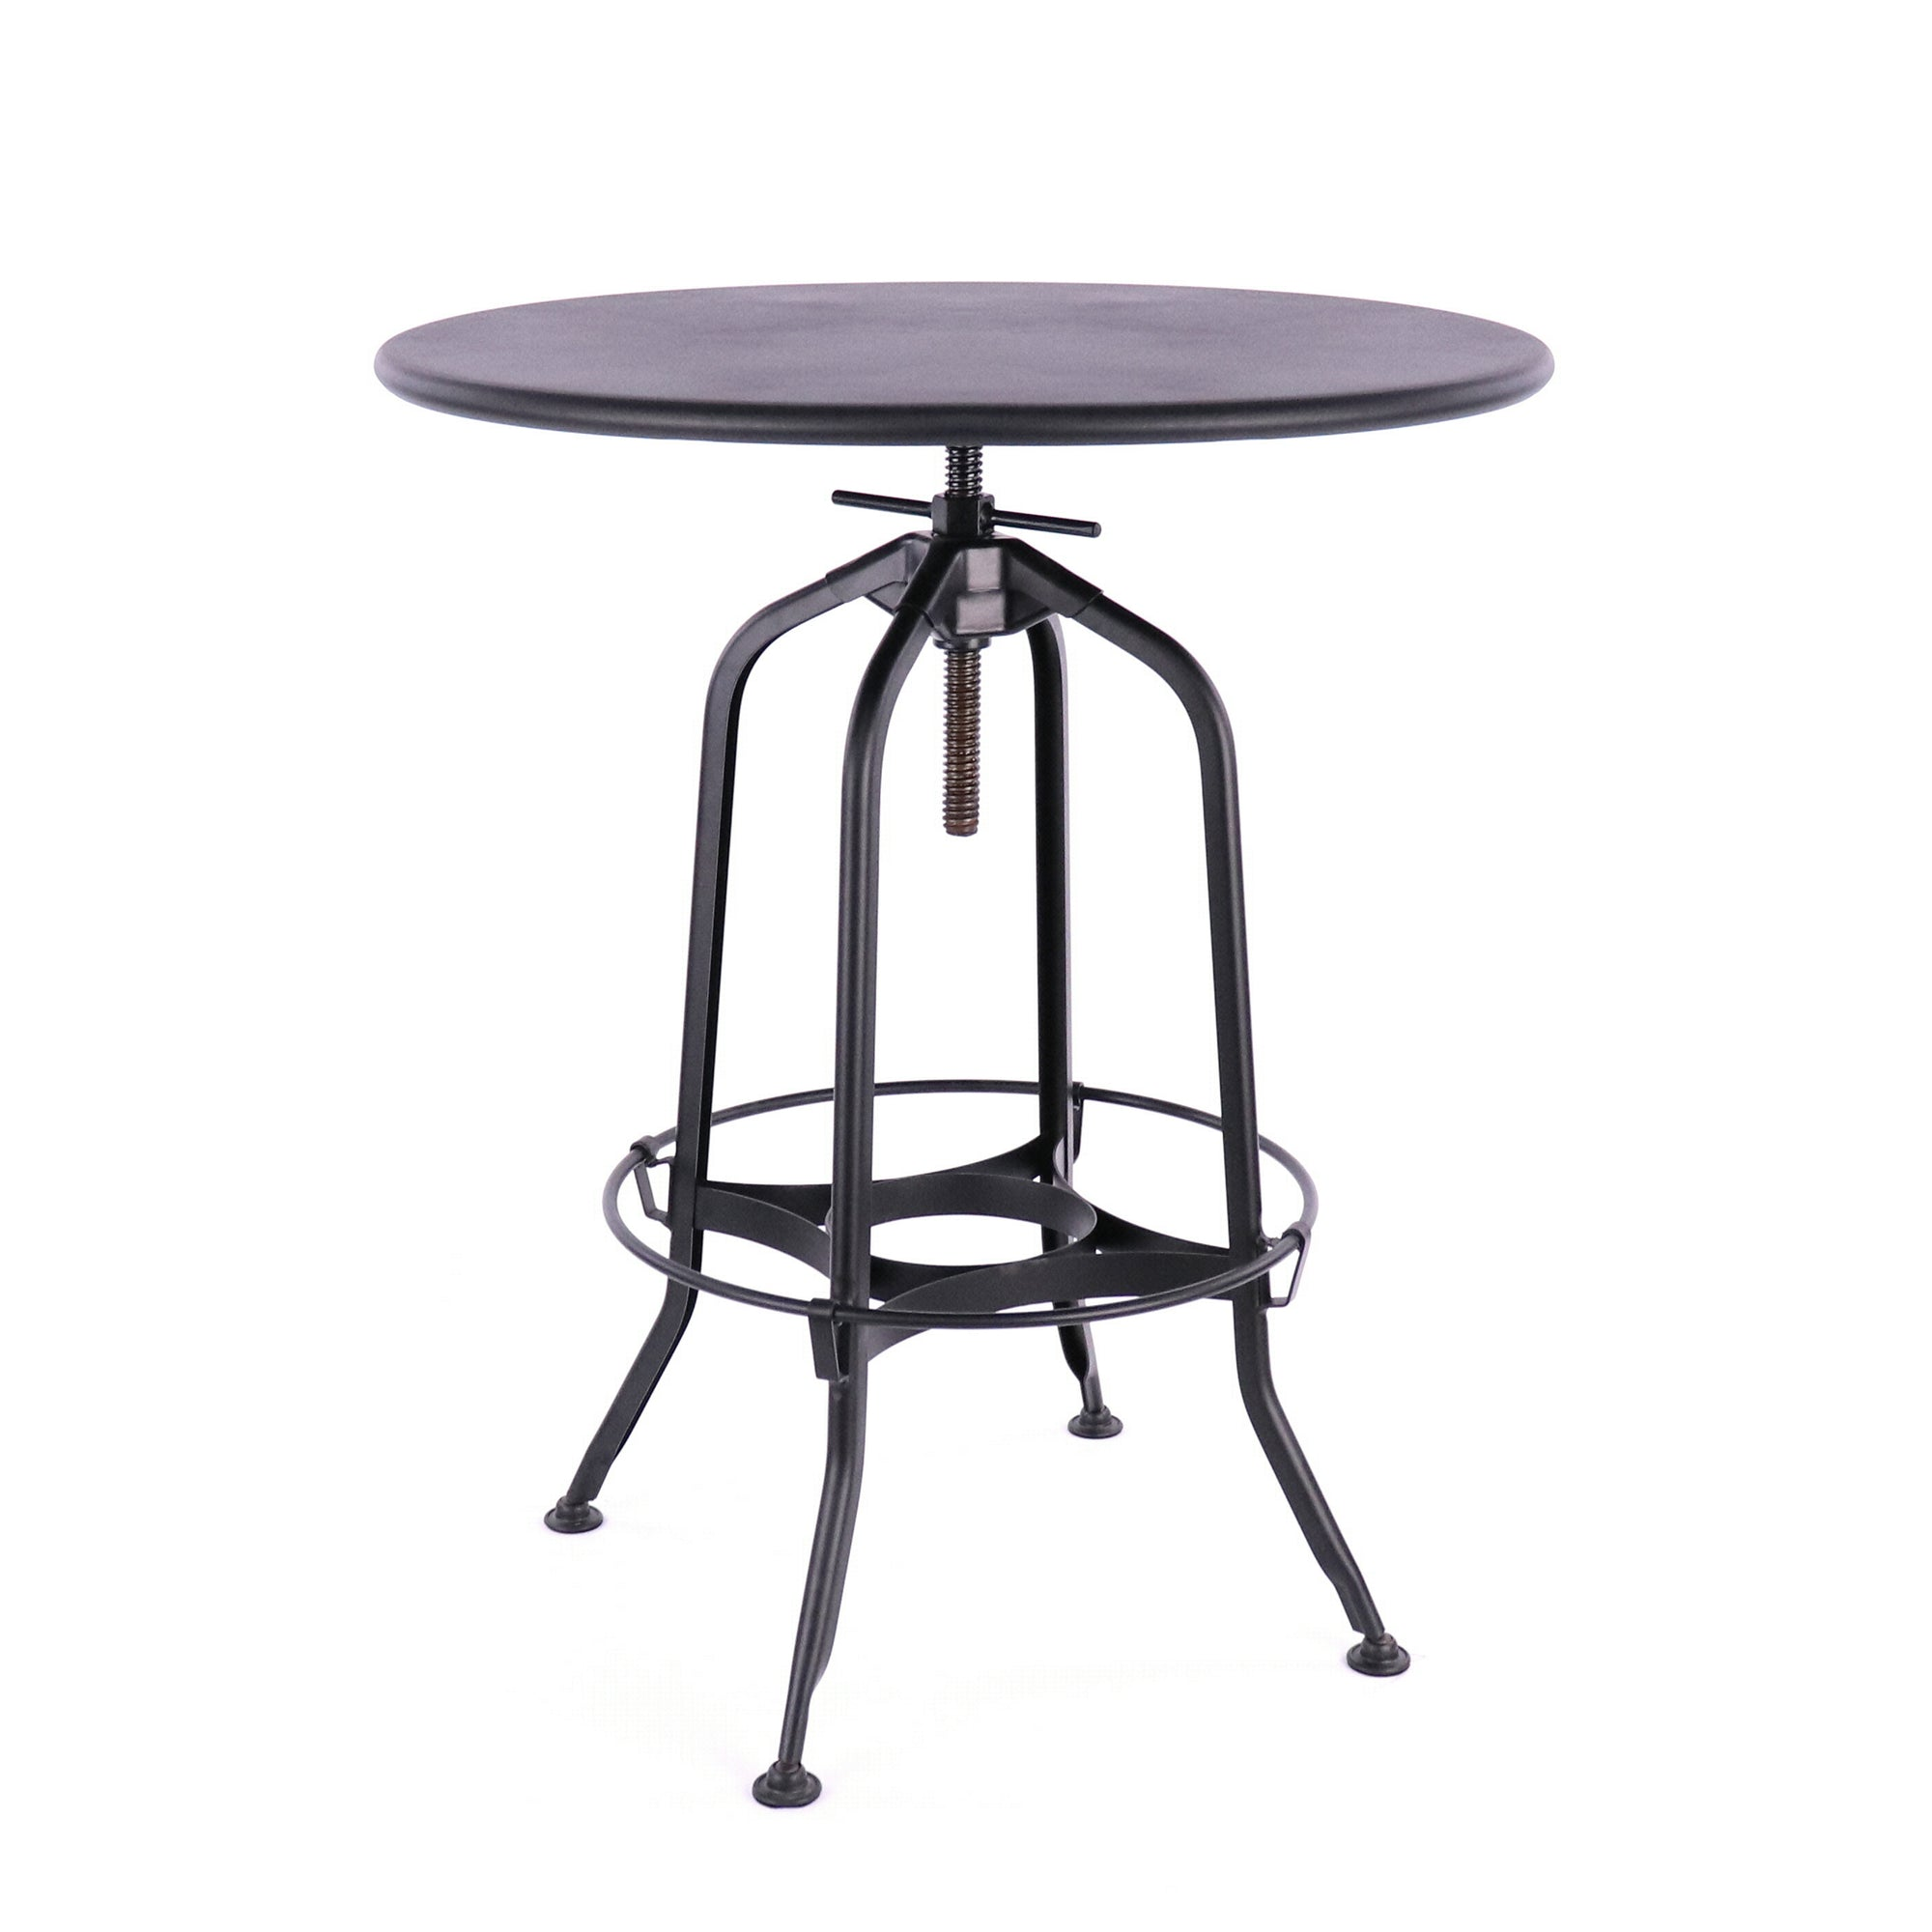 DesignLabMN-Toledo Adjustable Steel Bar Table 30 - 36 Inch-Bar Tables-MODTEMPO